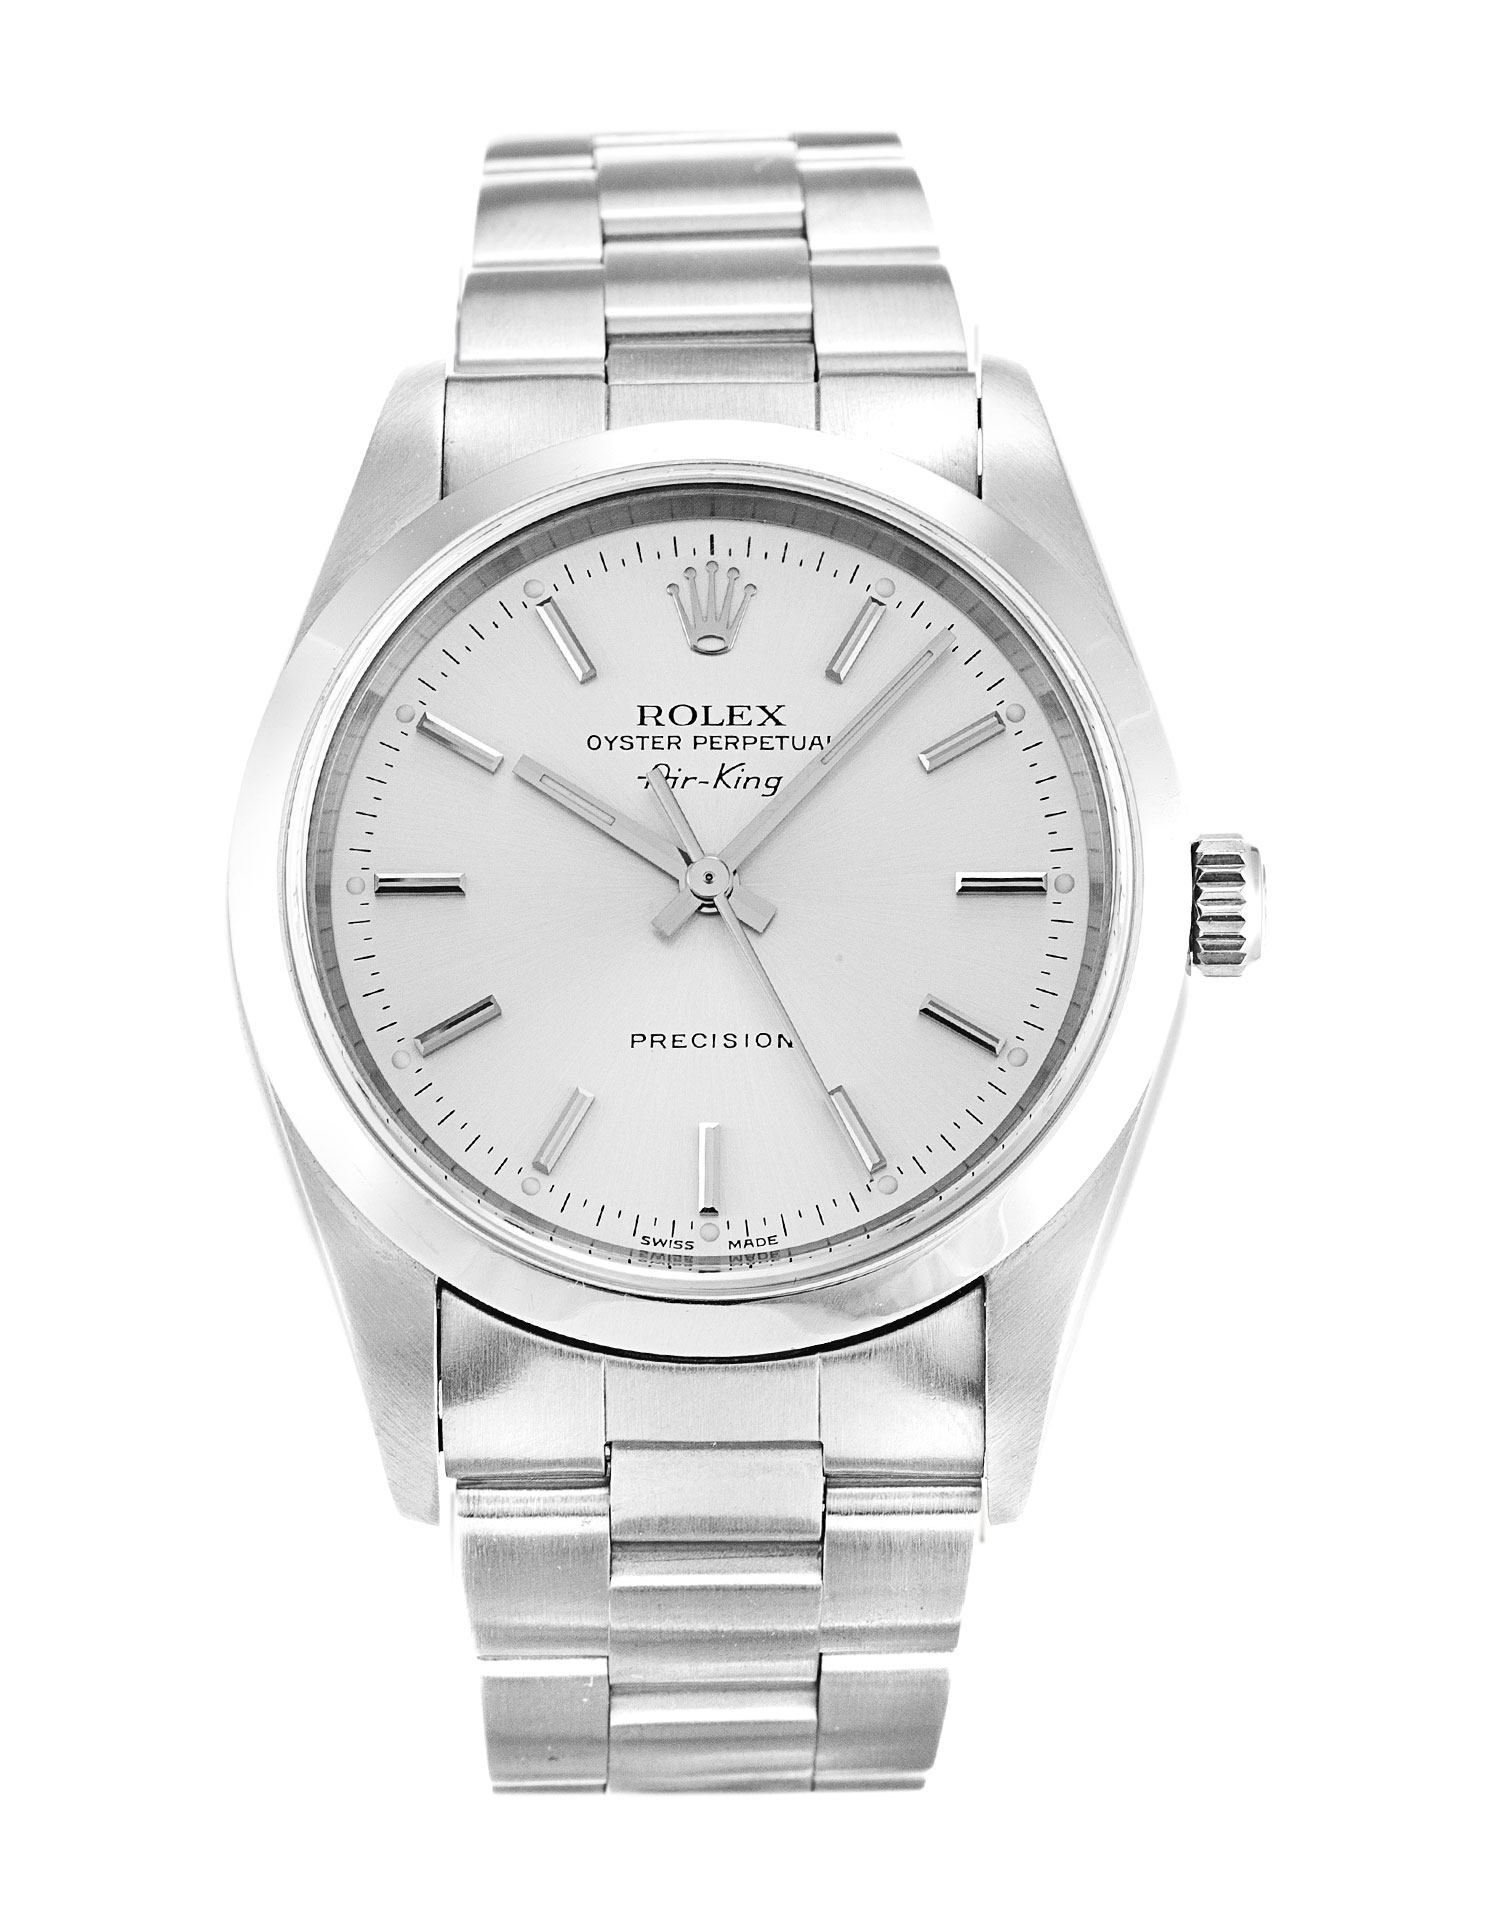 Rolex Air-king 14000m Unisex 34 Mm Steel Case Automatic Movement – iapac.to